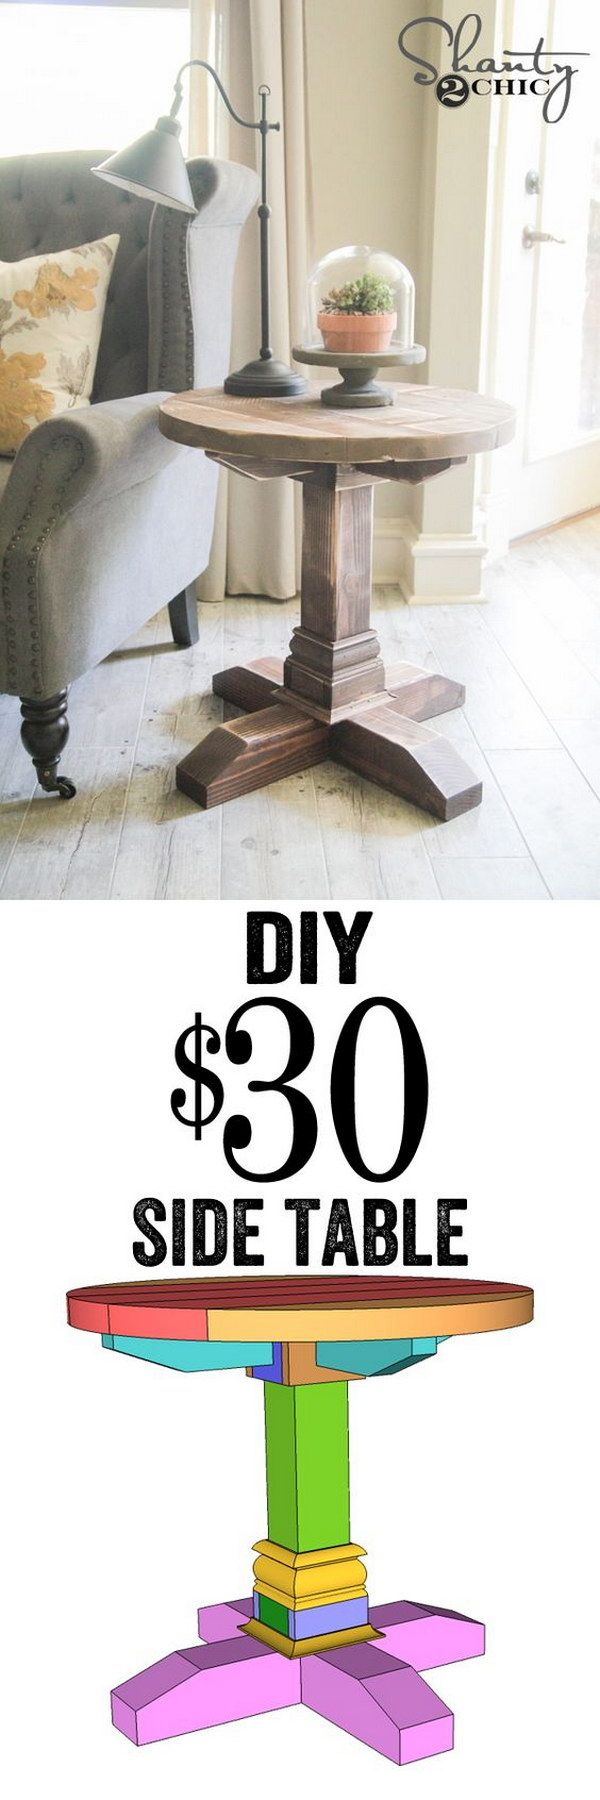 DIY $30 Round Side Table